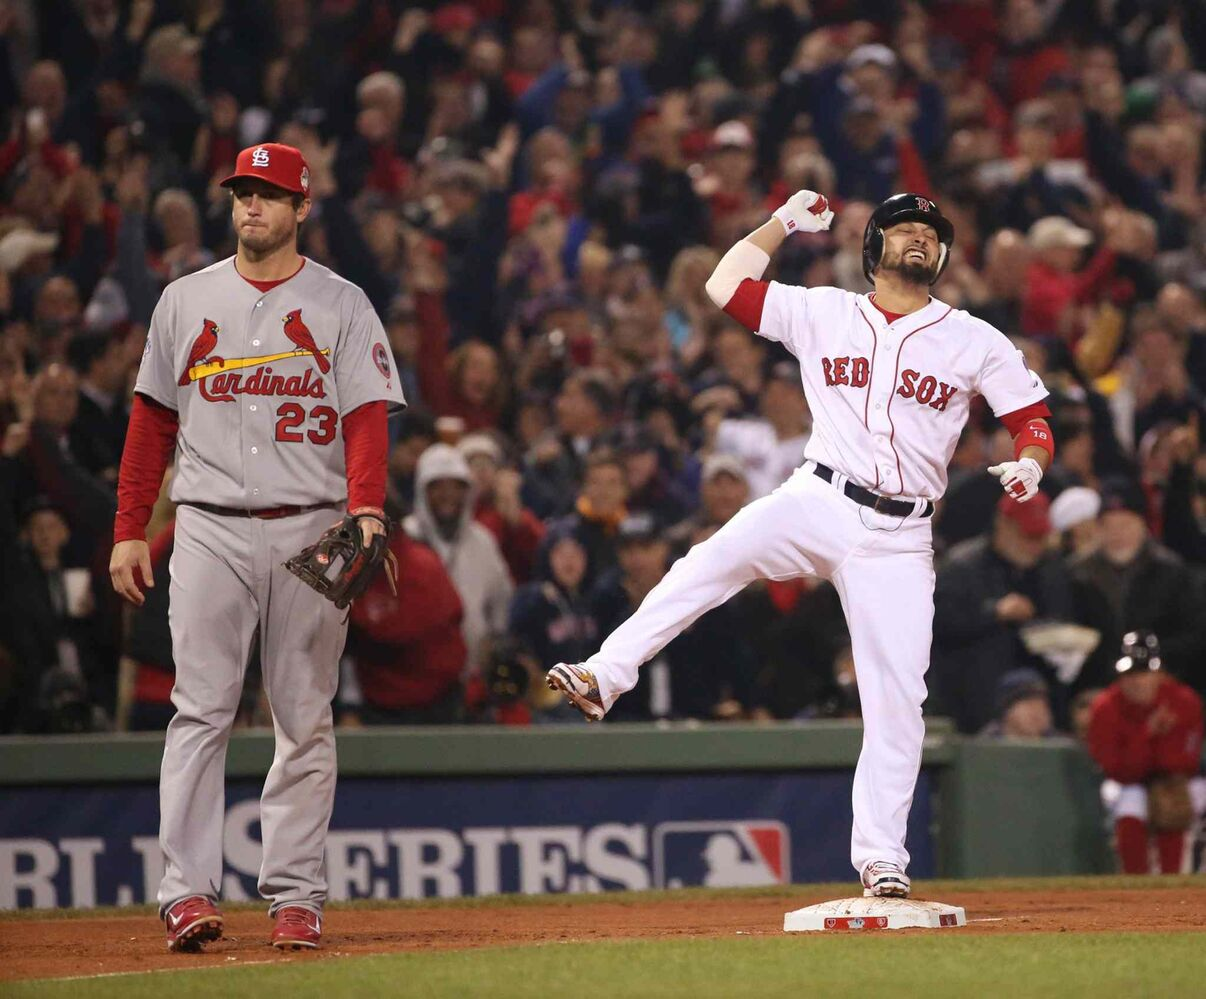 Boston Red Sox's Shane Victorino reacts after driving in three runs with a double during the third inning. (Tribune Media MCT)